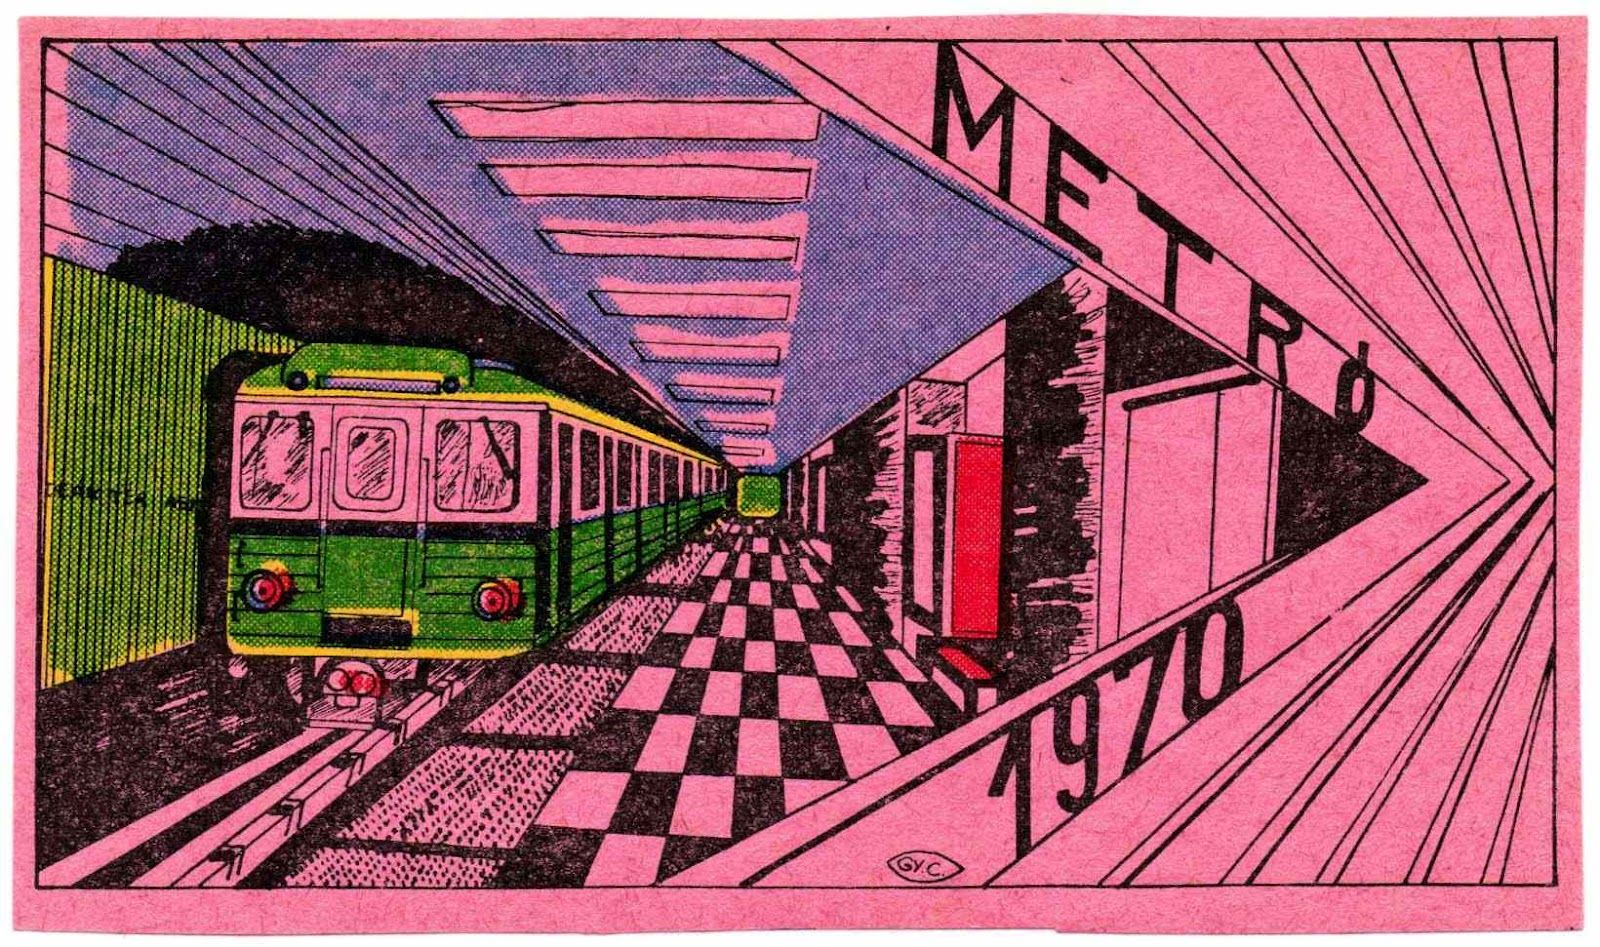 Metro+1970+Eastern+European+oversized+matchbox+label.jpg (1600×947)